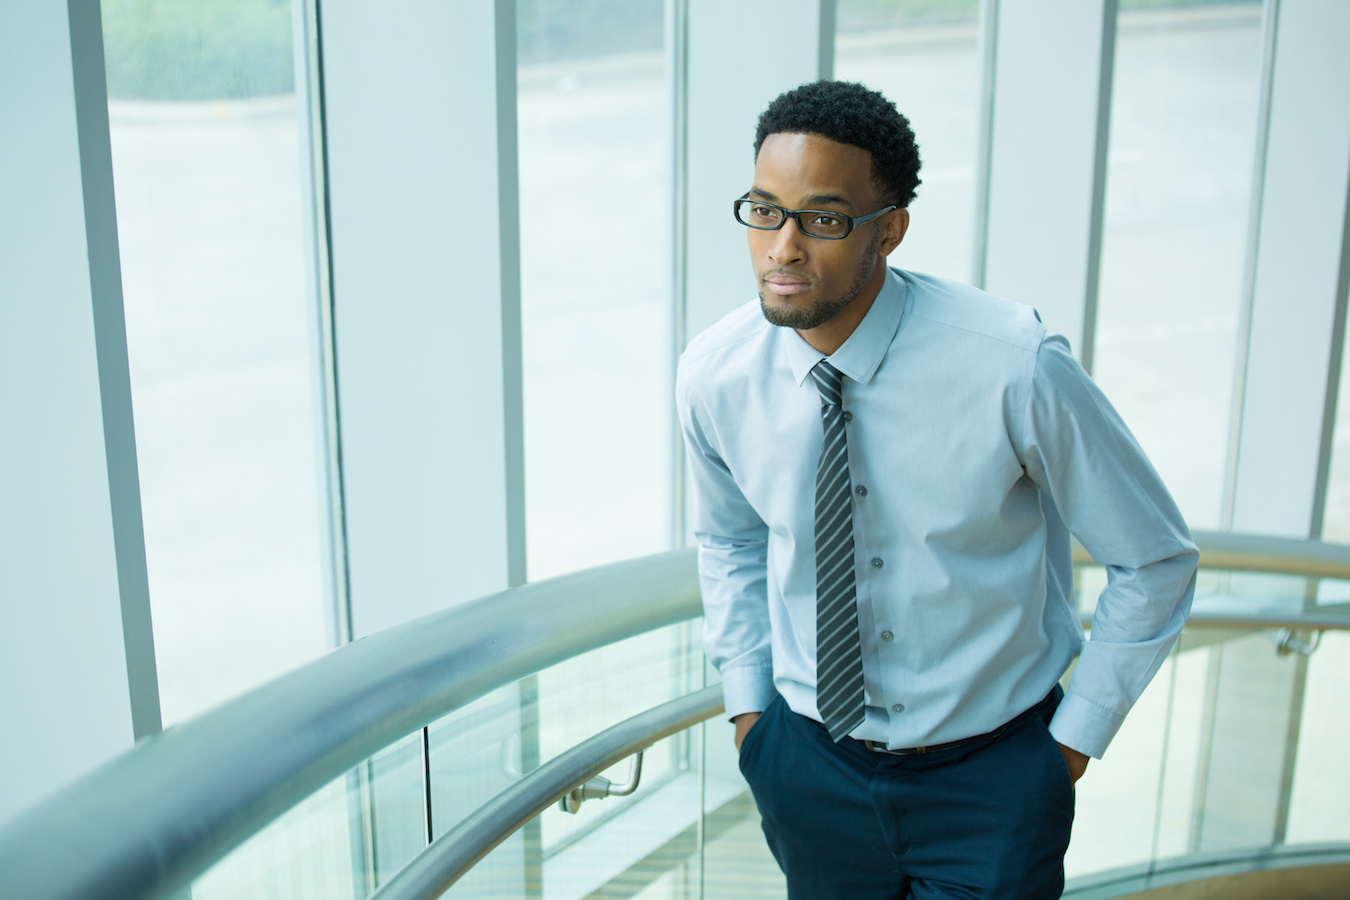 The EvoLLLution | Addressing Hurdles to Academic Success for Minority Males